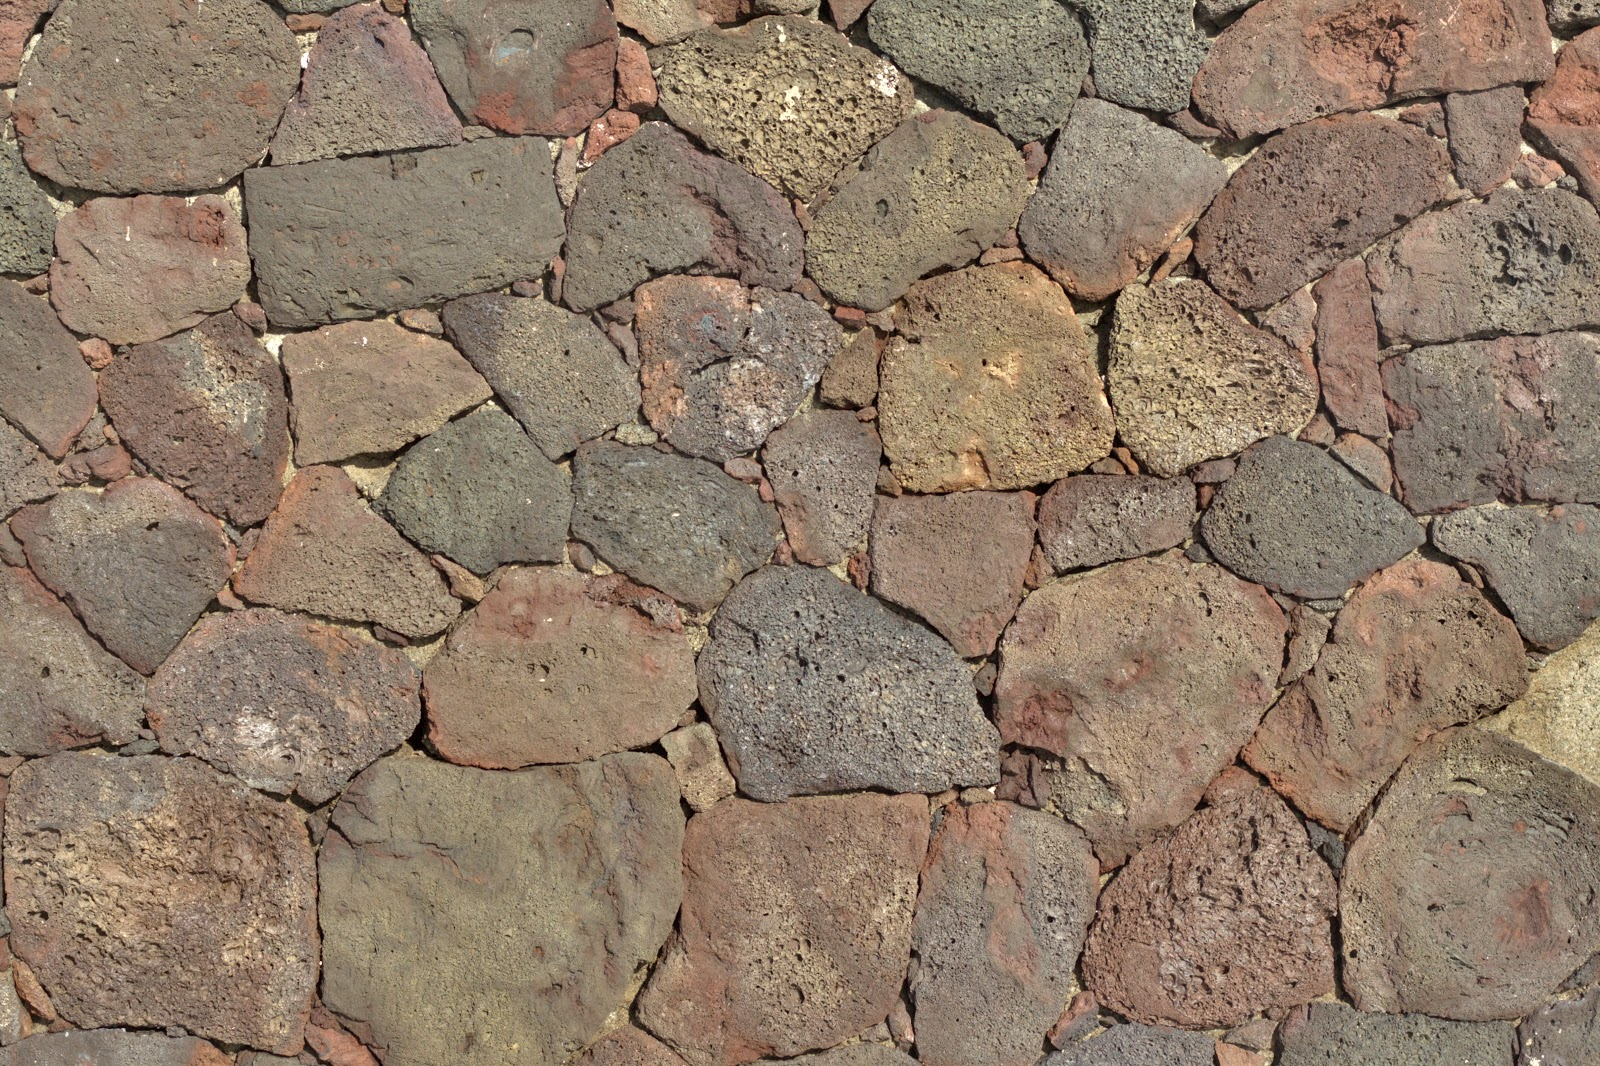 Stone wall floor coloured rock texture 4770x3178